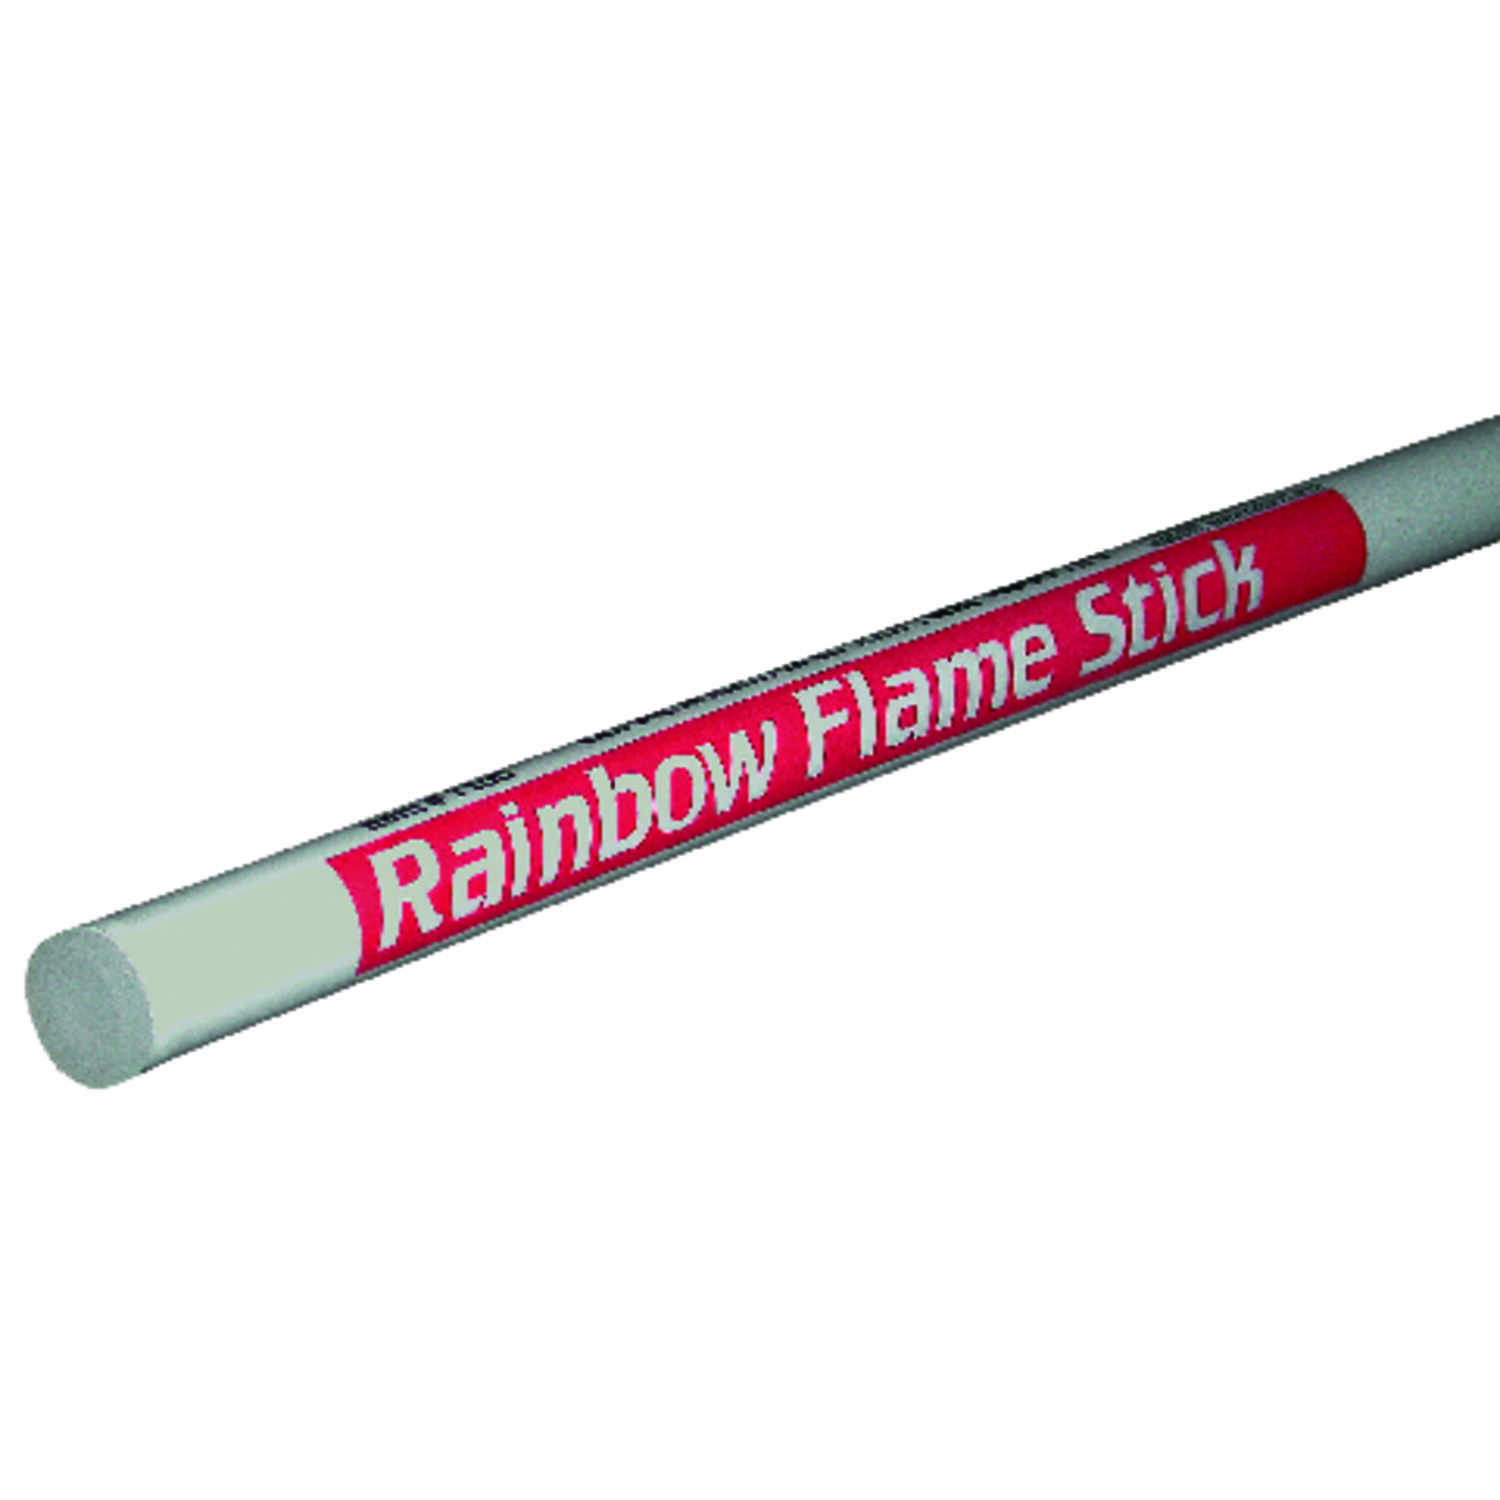 Rutland  Rainbow Flame Stick  Cellulose Stick  Fire Starter  1.45 oz.